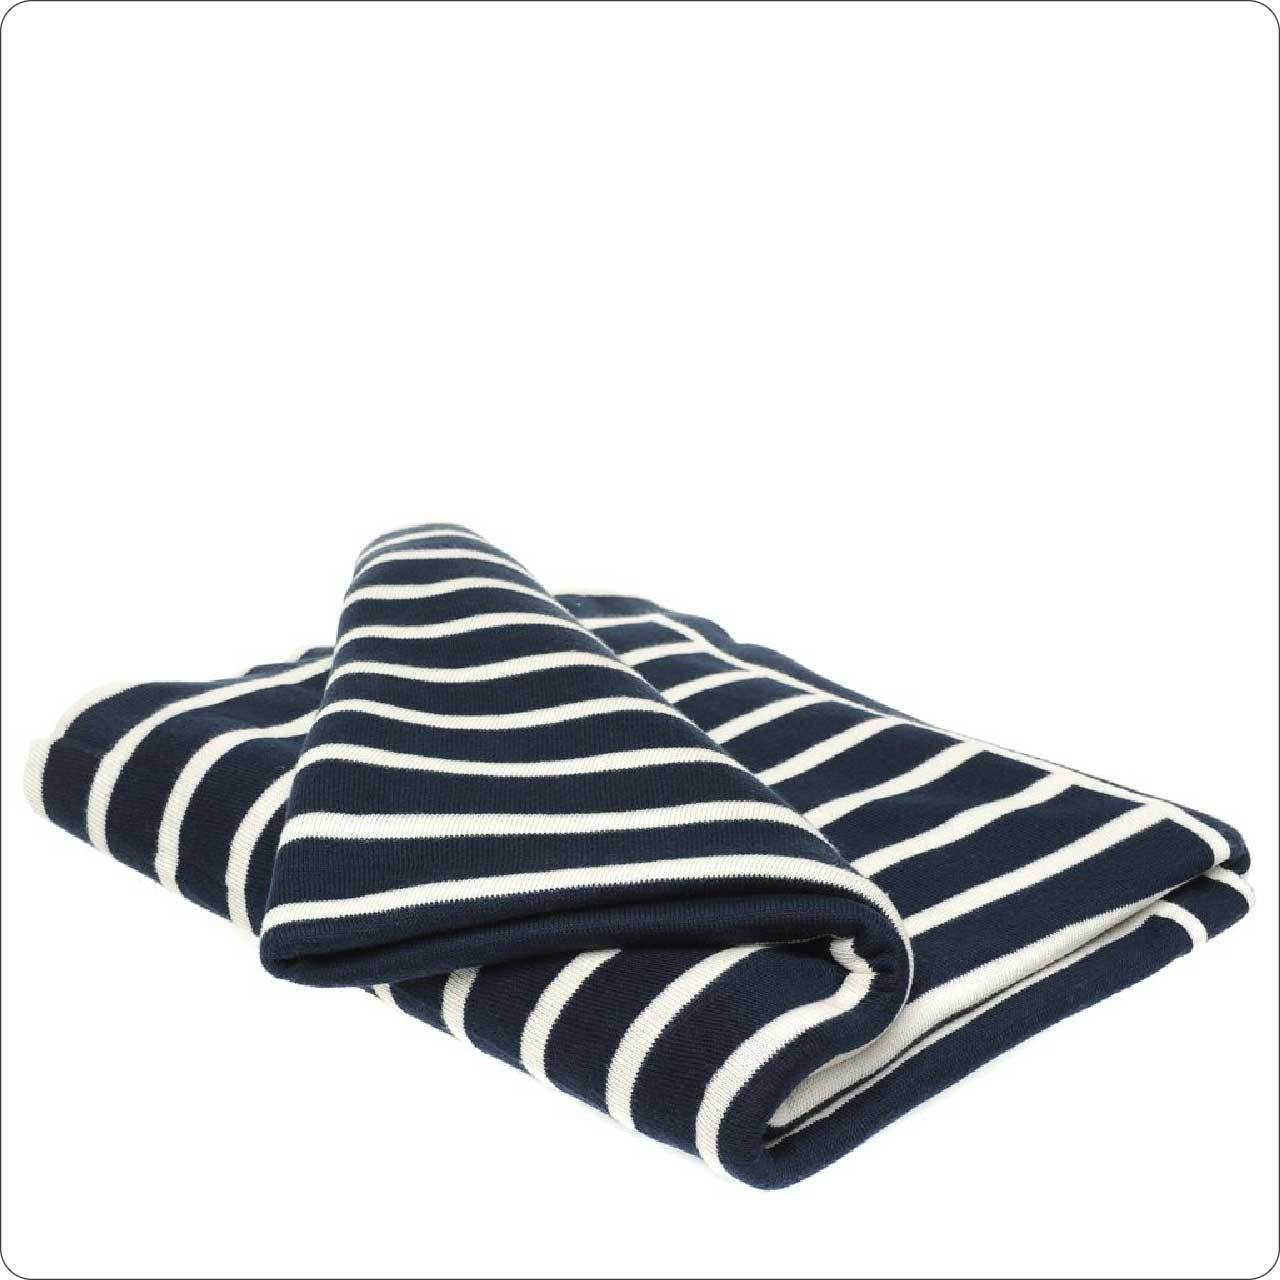 Luxury Cotton Knitted Throw 130x180cm Navy-Ivory